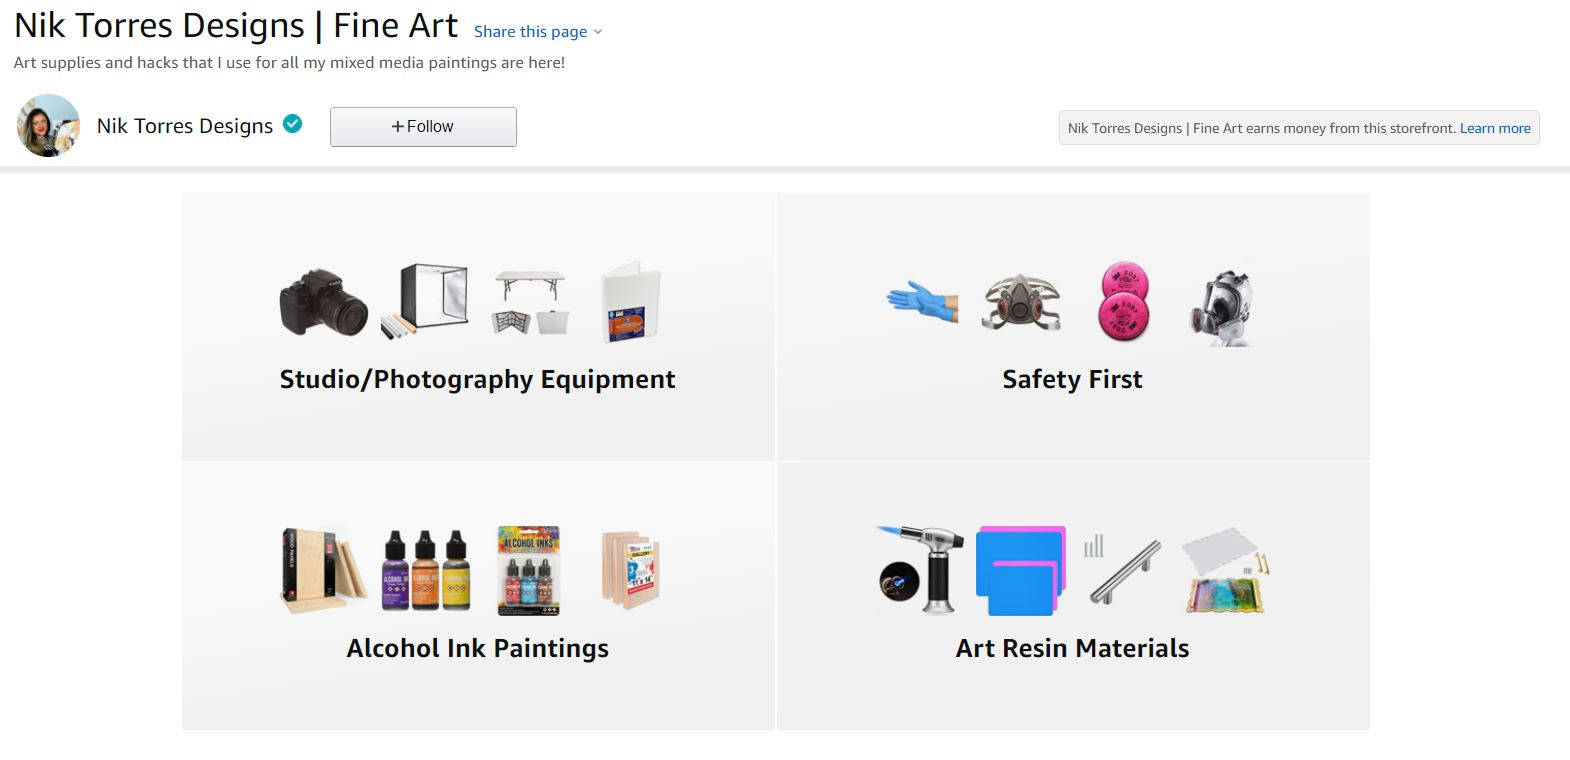 Nik Torres Designs Amazon Store, for Art supplies, alcohol ink and resin art. Studio and photography equipment